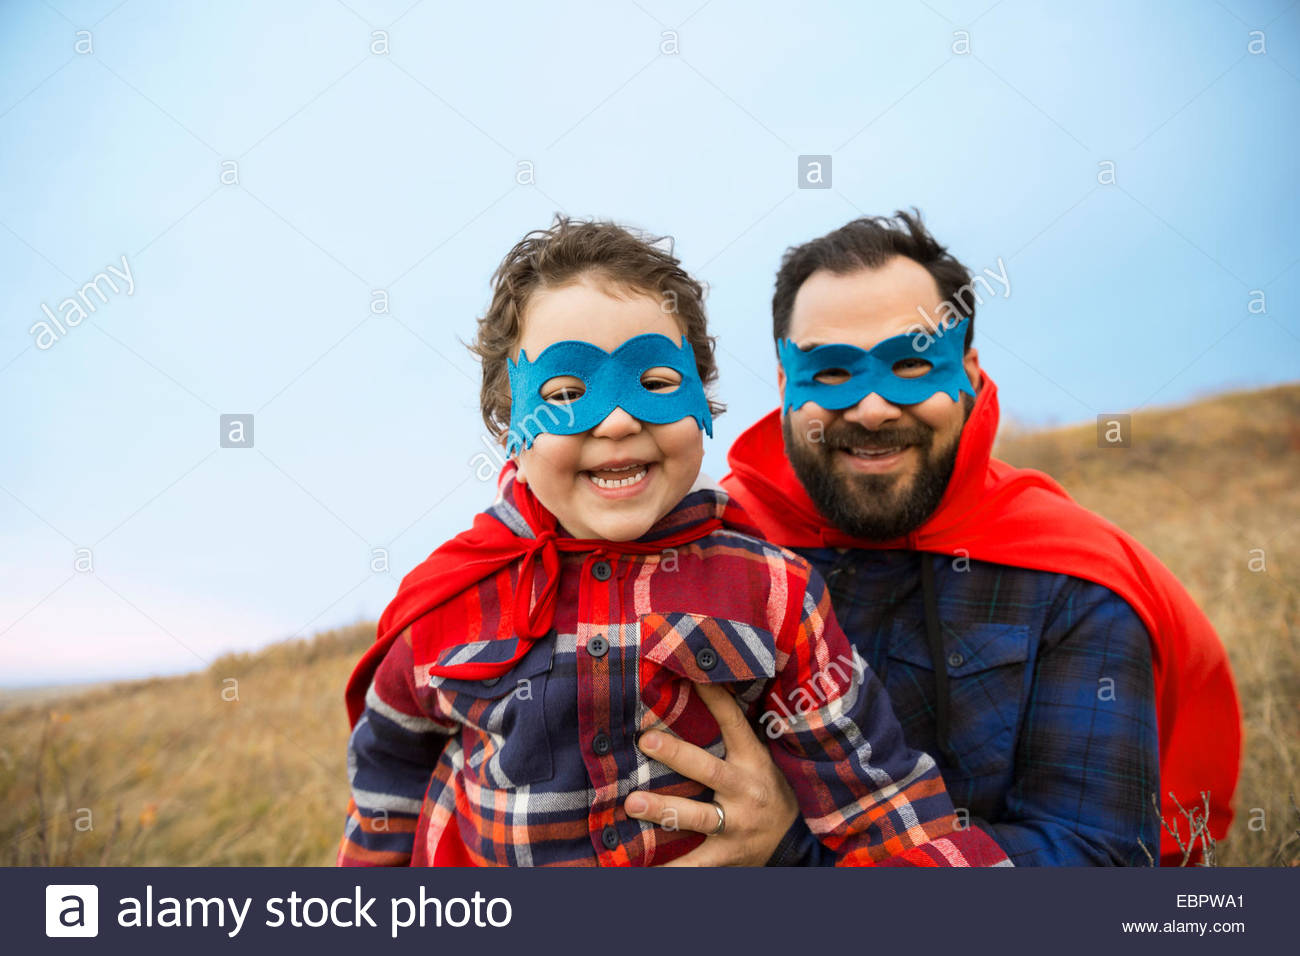 Portrait du père et fils de capes de super-héros Photo Stock